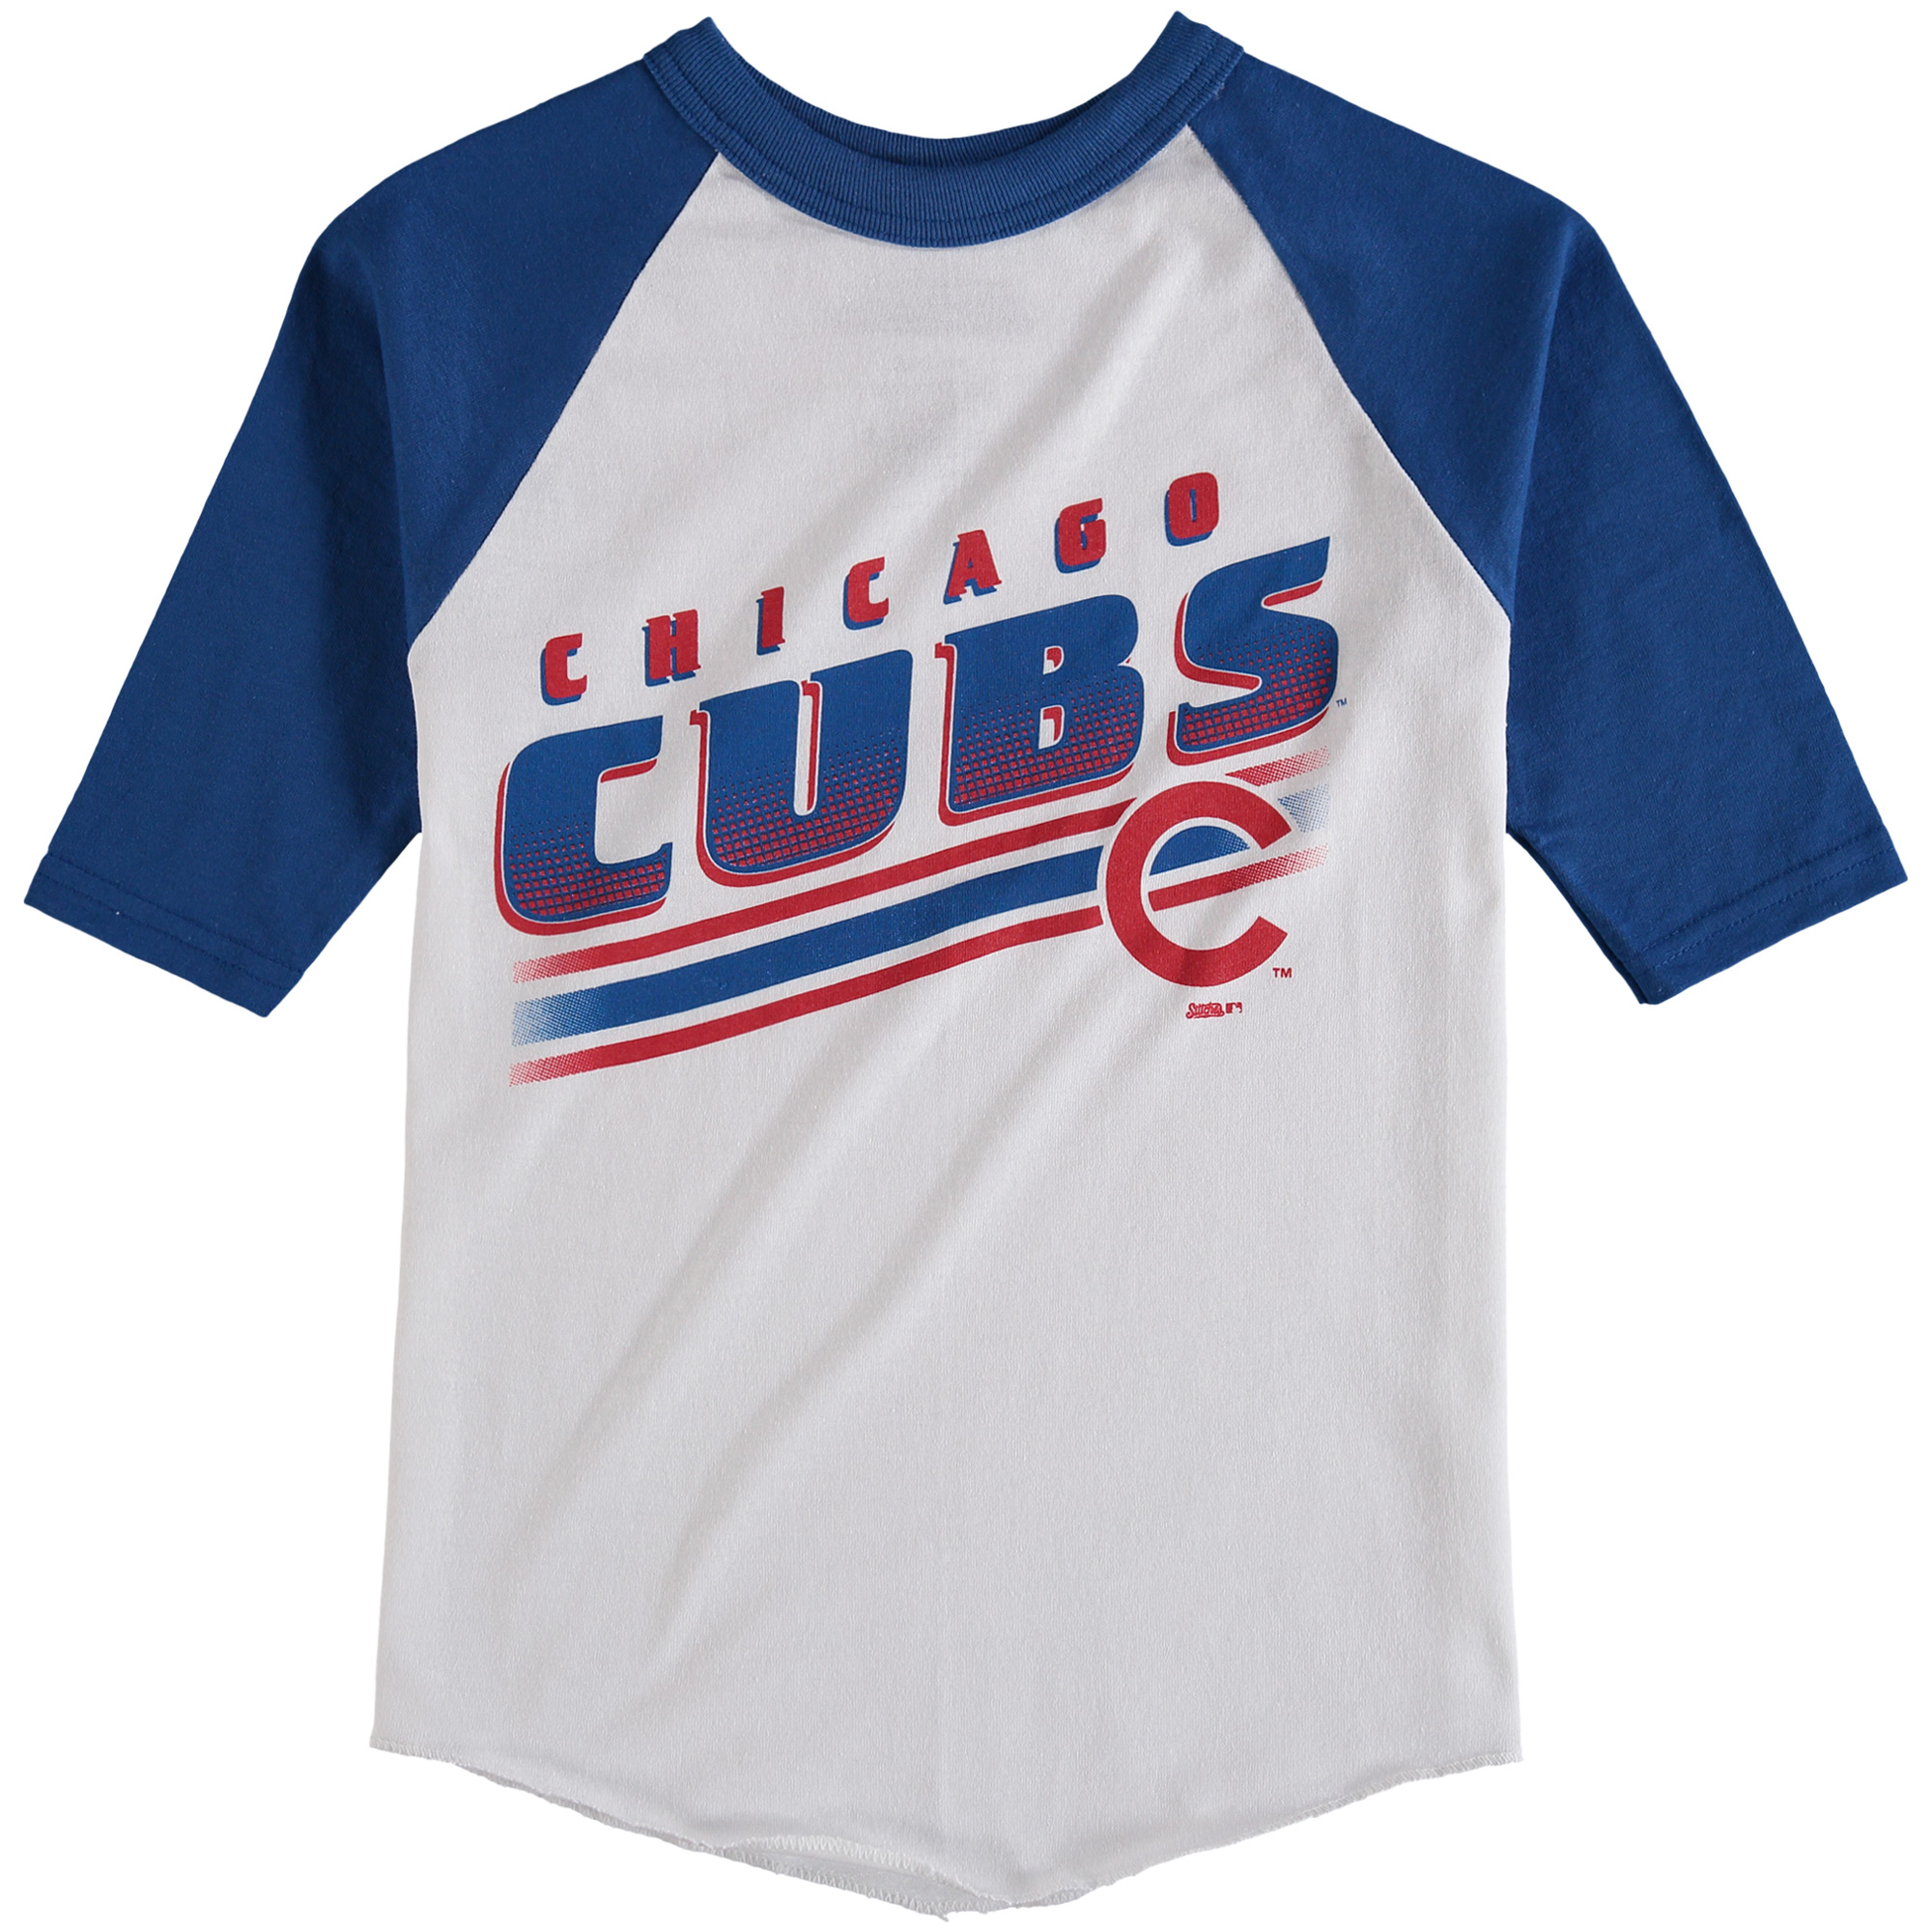 Chicago Cubs Stitches Youth 3/4-Sleeve Raglan T-Shirt - White/Royal